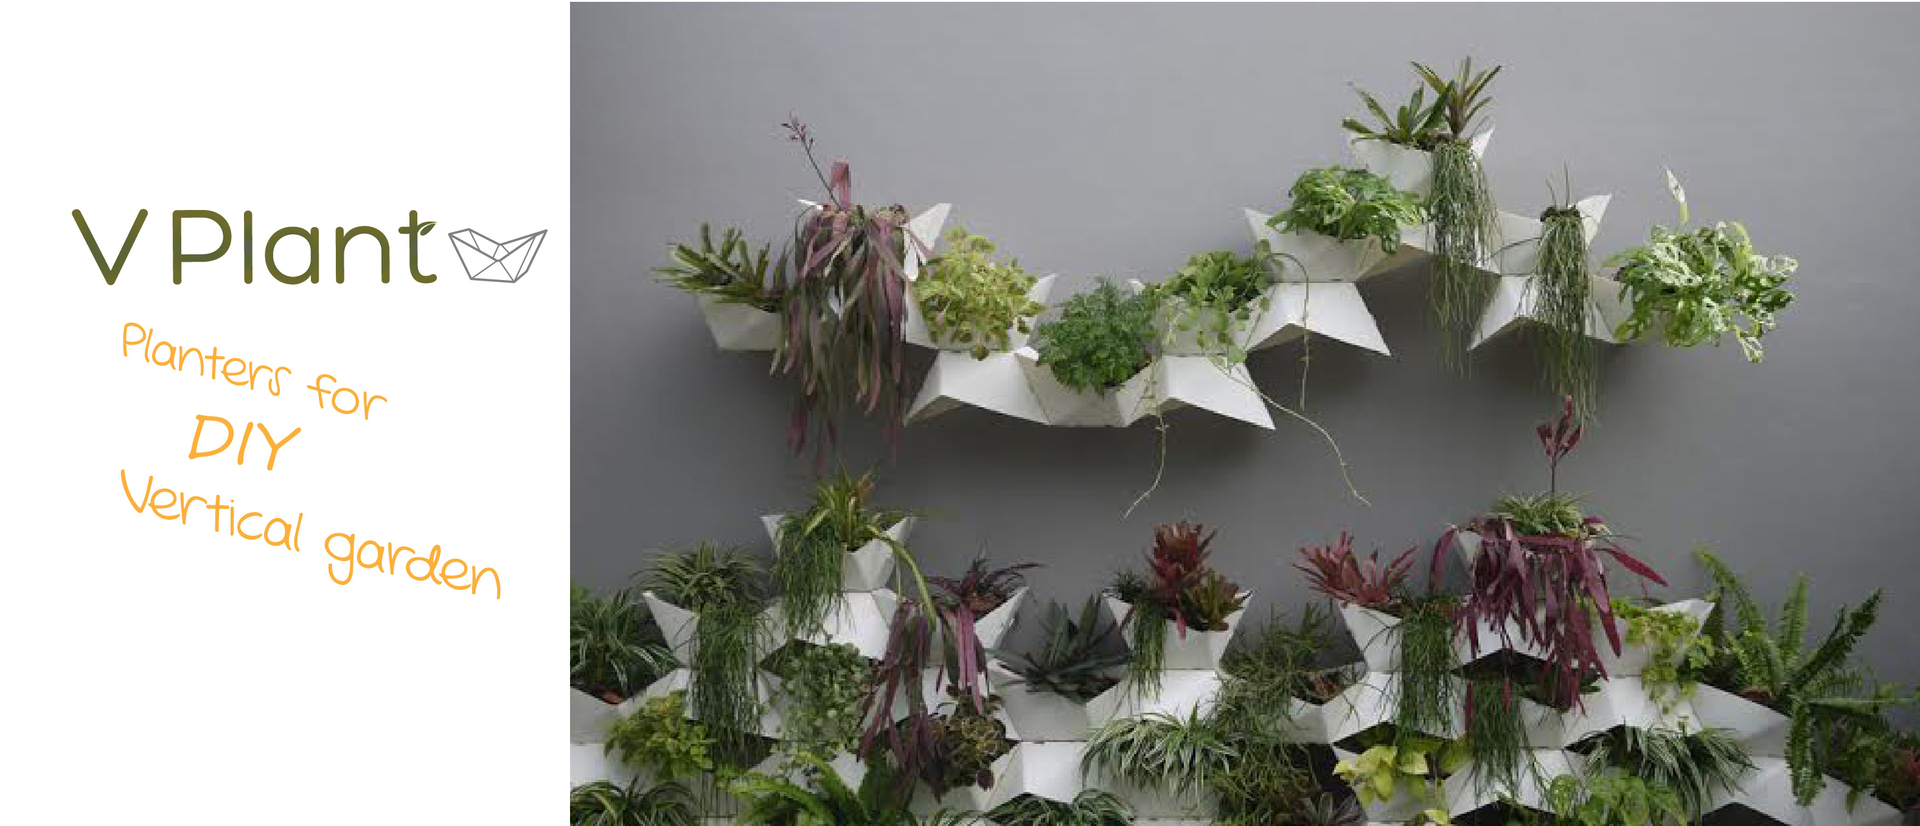 Garden Wall Planter Wall Planters Vplant The Wall